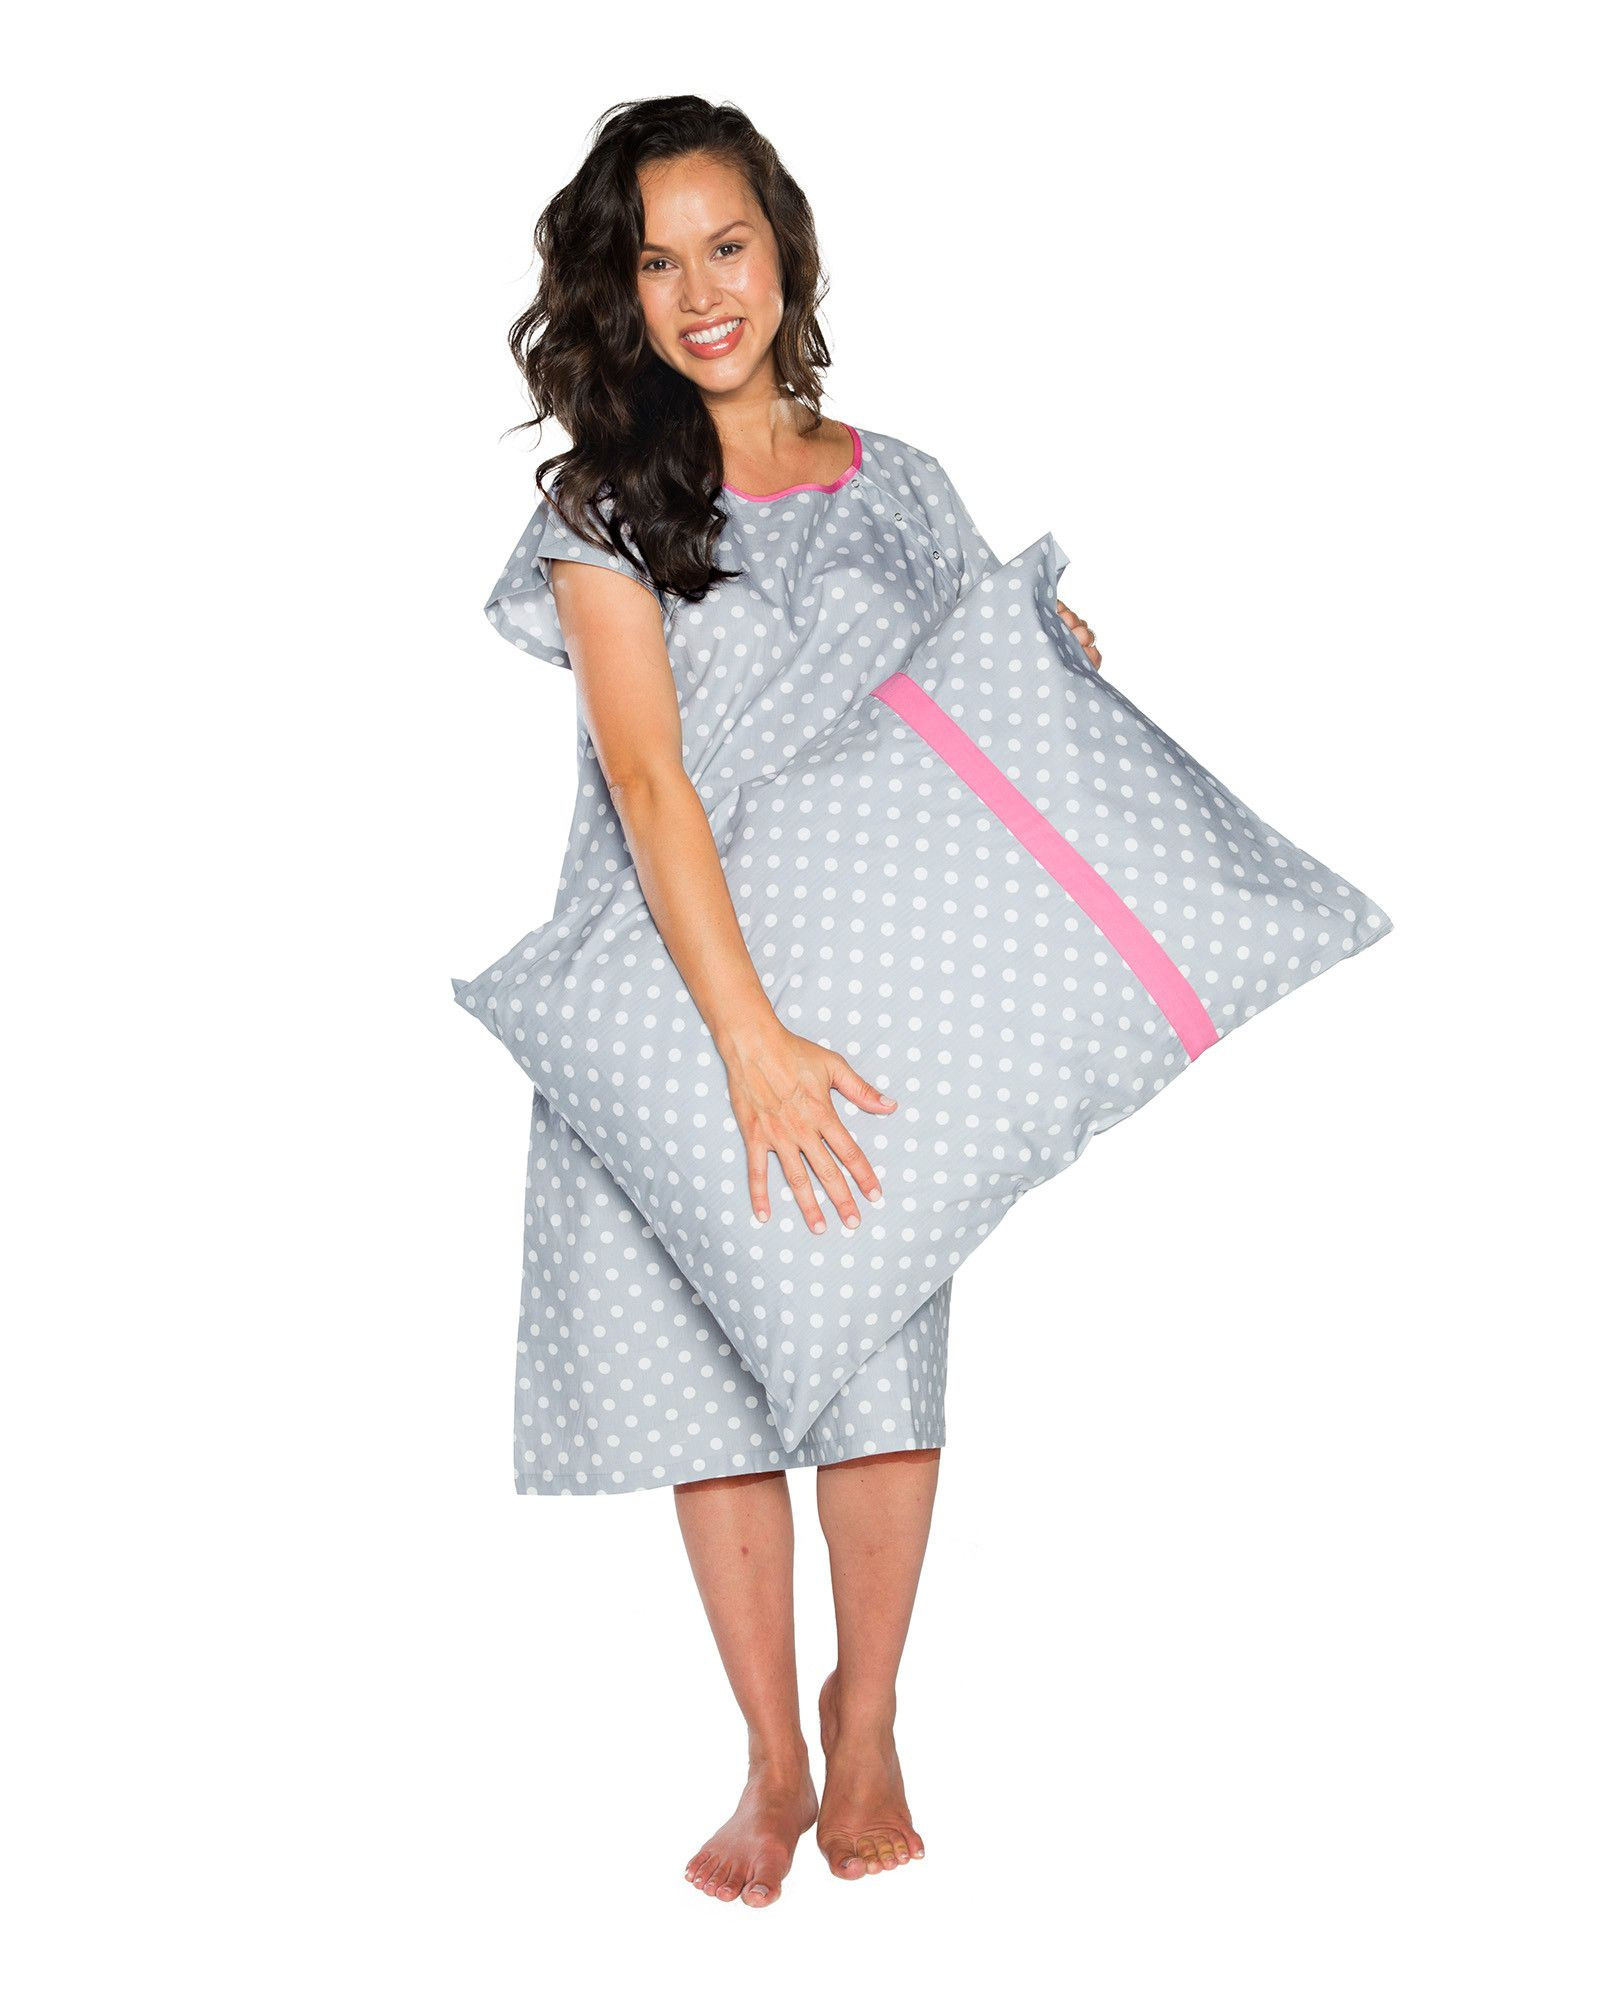 Lisa Gownie Delivery/Labor/Hospital Gown & Pillowcase SetHere is the ...